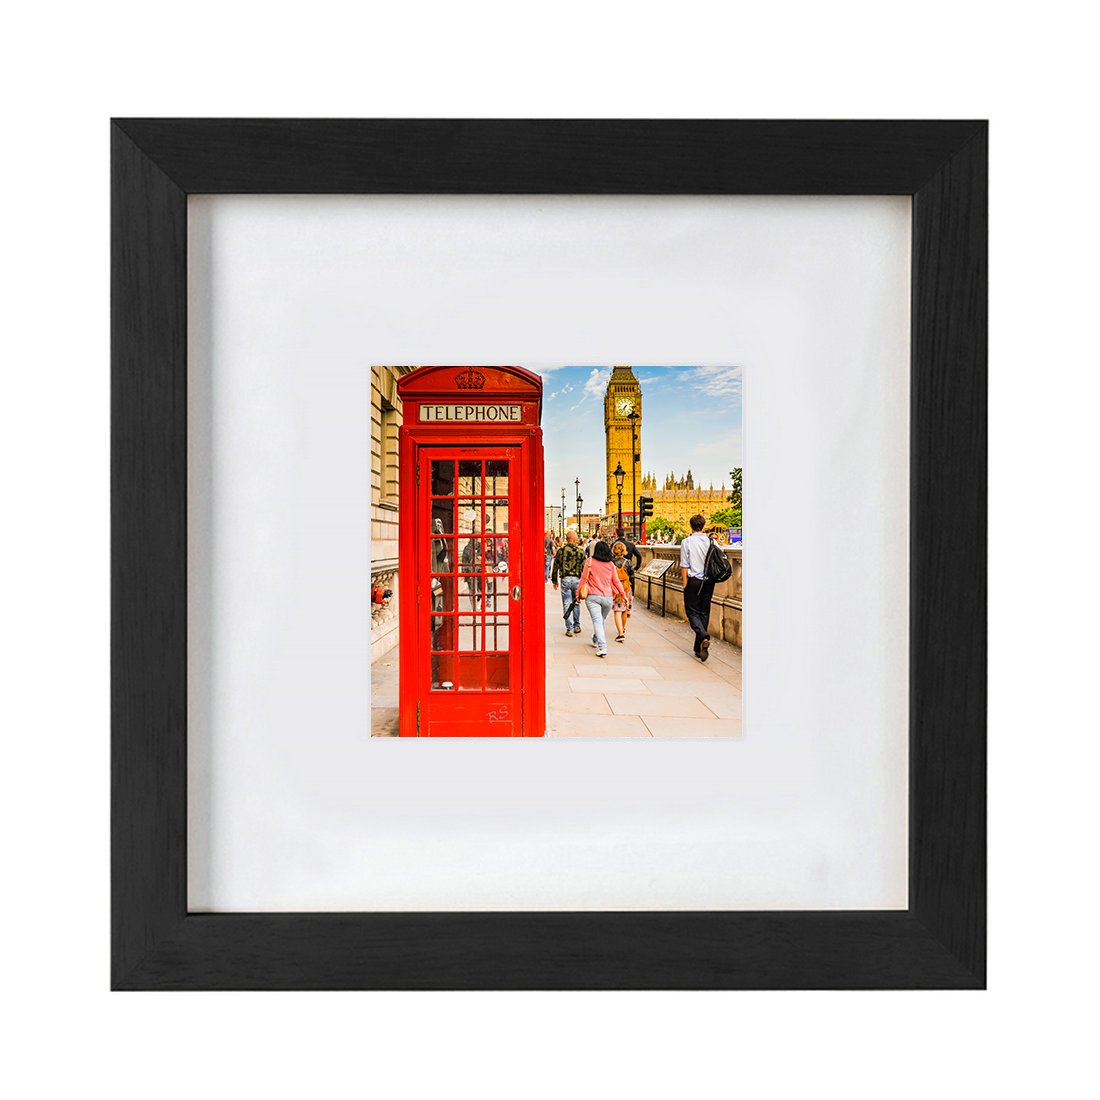 8x8 Inch Black Picture Frames Made to 4x4 Wooden Square Photo Frames with Mat for Wall Hanging or Table Top